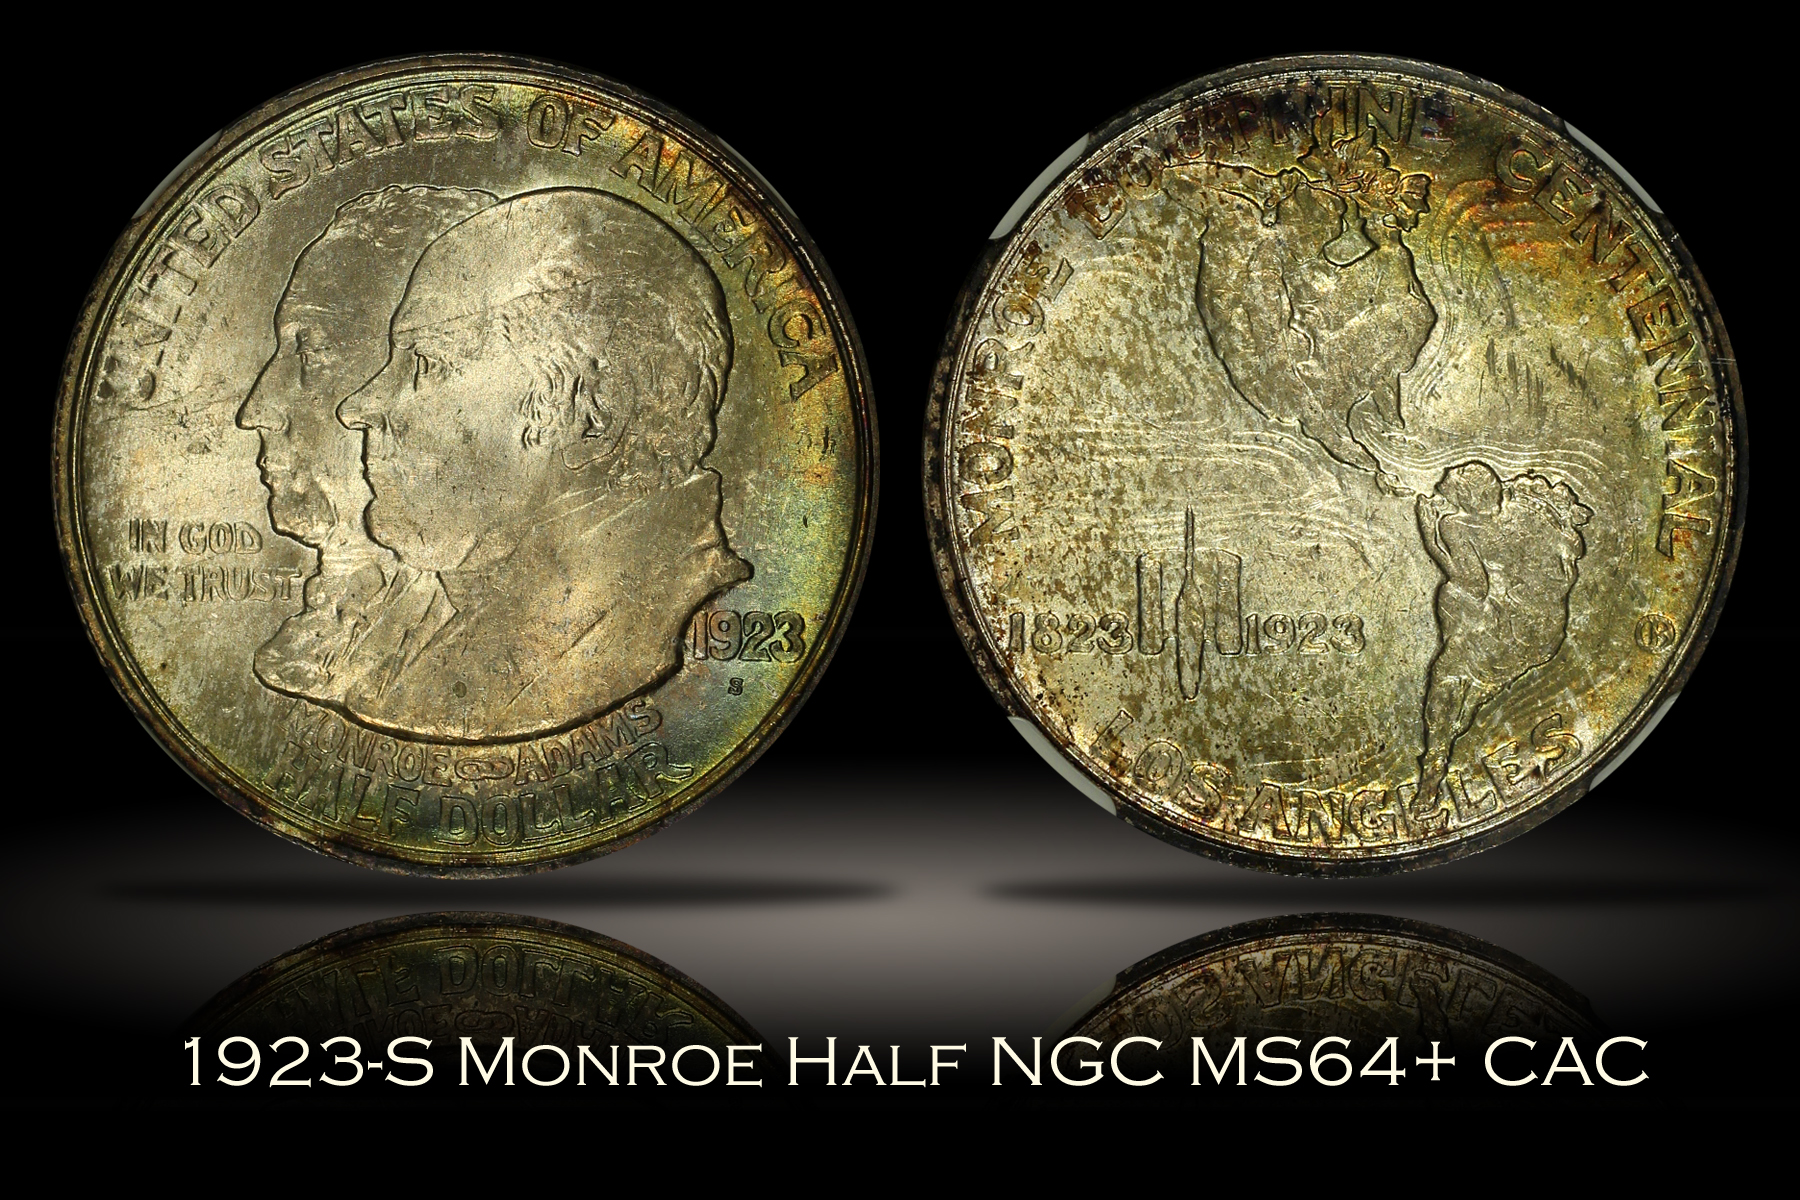 1923-S Monroe Doctrine Half NGC MS64+ CAC